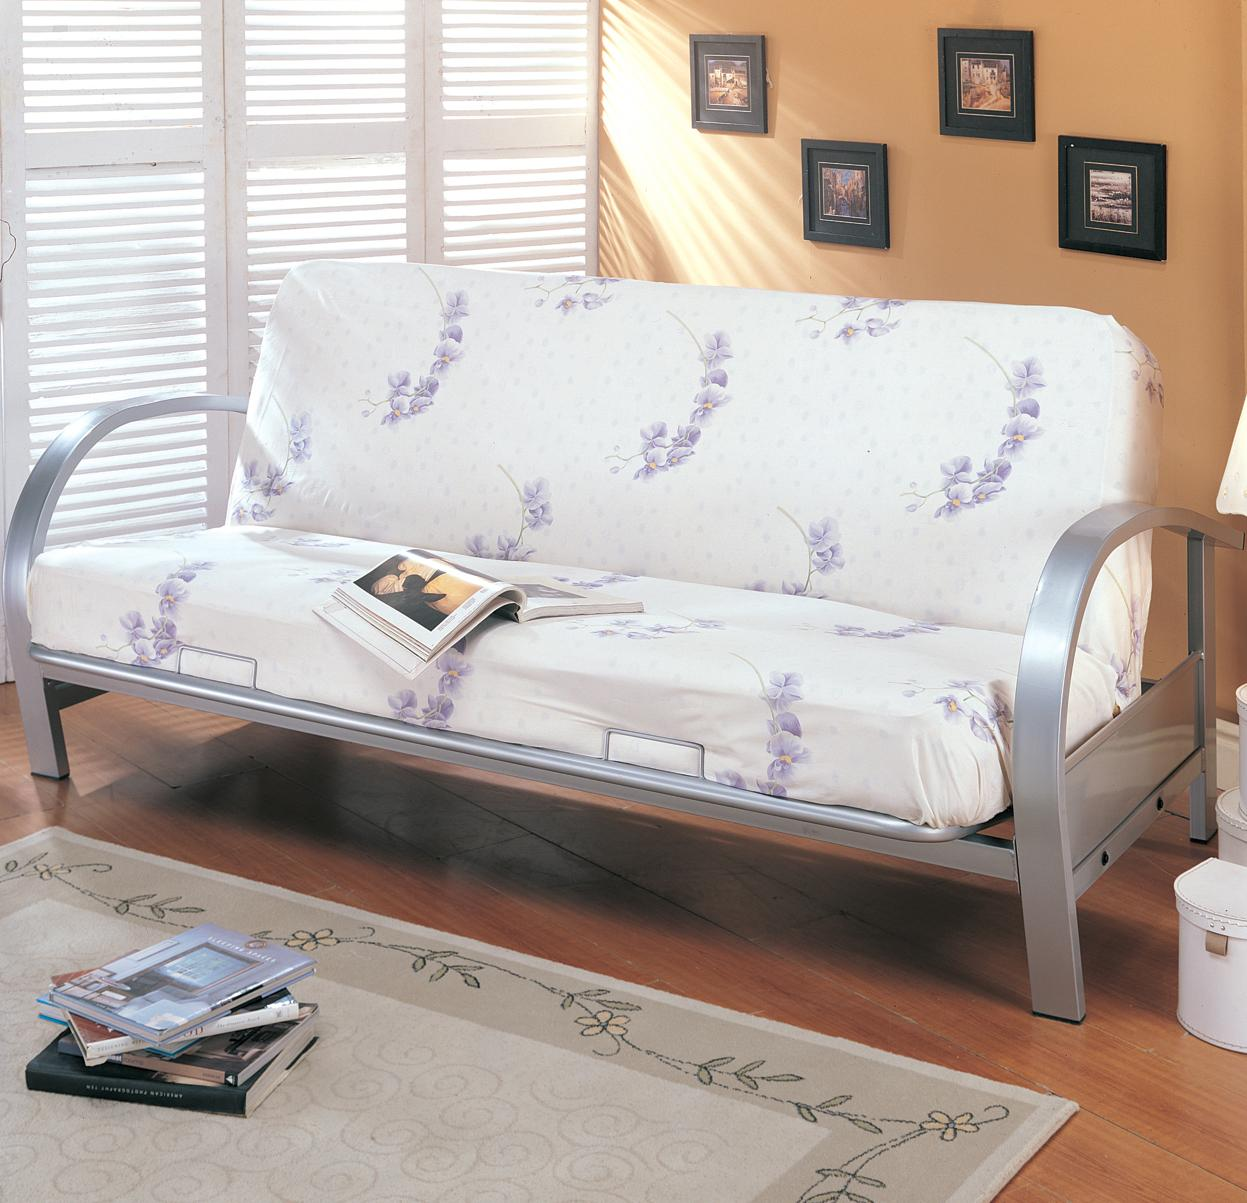 Coaster Futons Contemporary Metal Futon Frame and Mattress Set  Del Sol Furniture  Futons